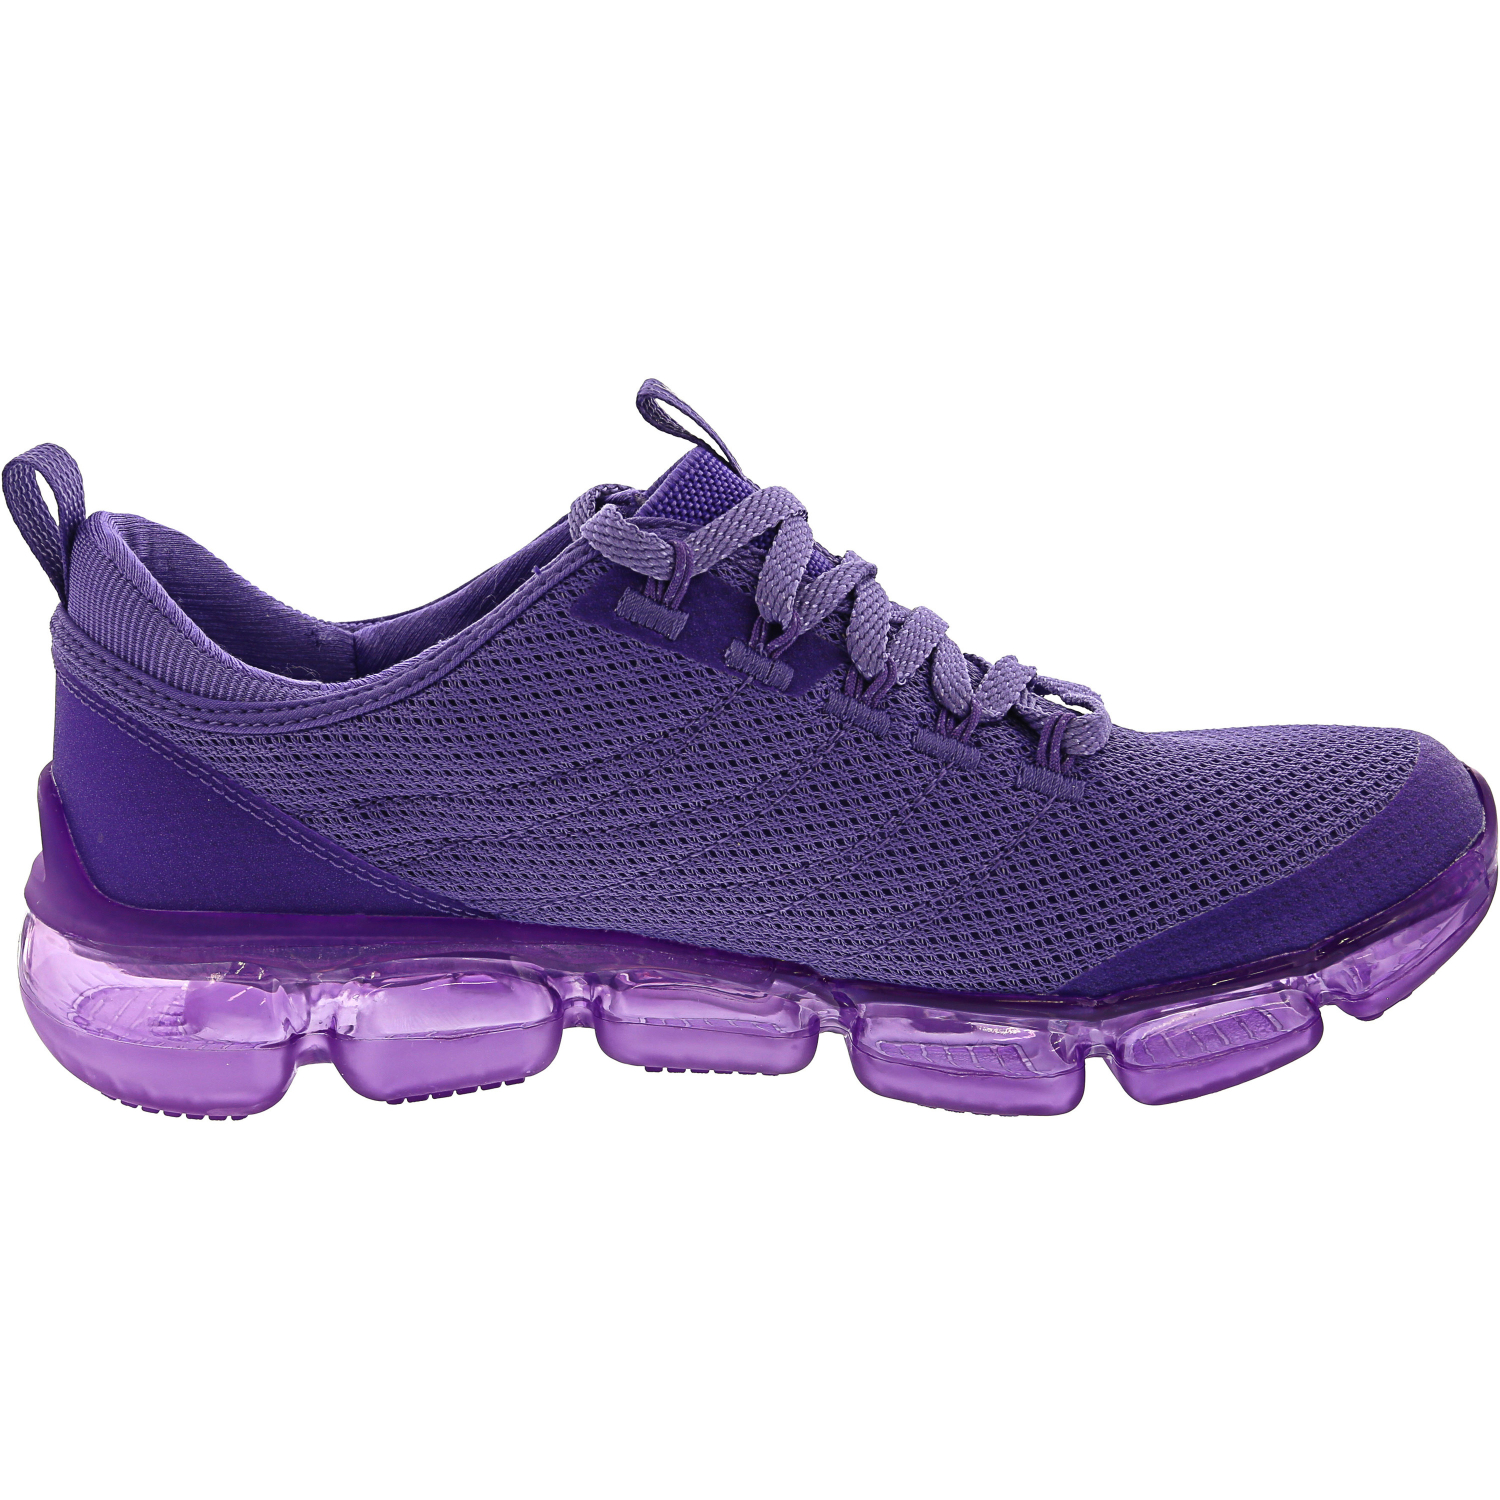 Skechers-Women-039-s-Skech-Air-92-Significance-Ankle-High-Mesh-Training-Shoes thumbnail 17